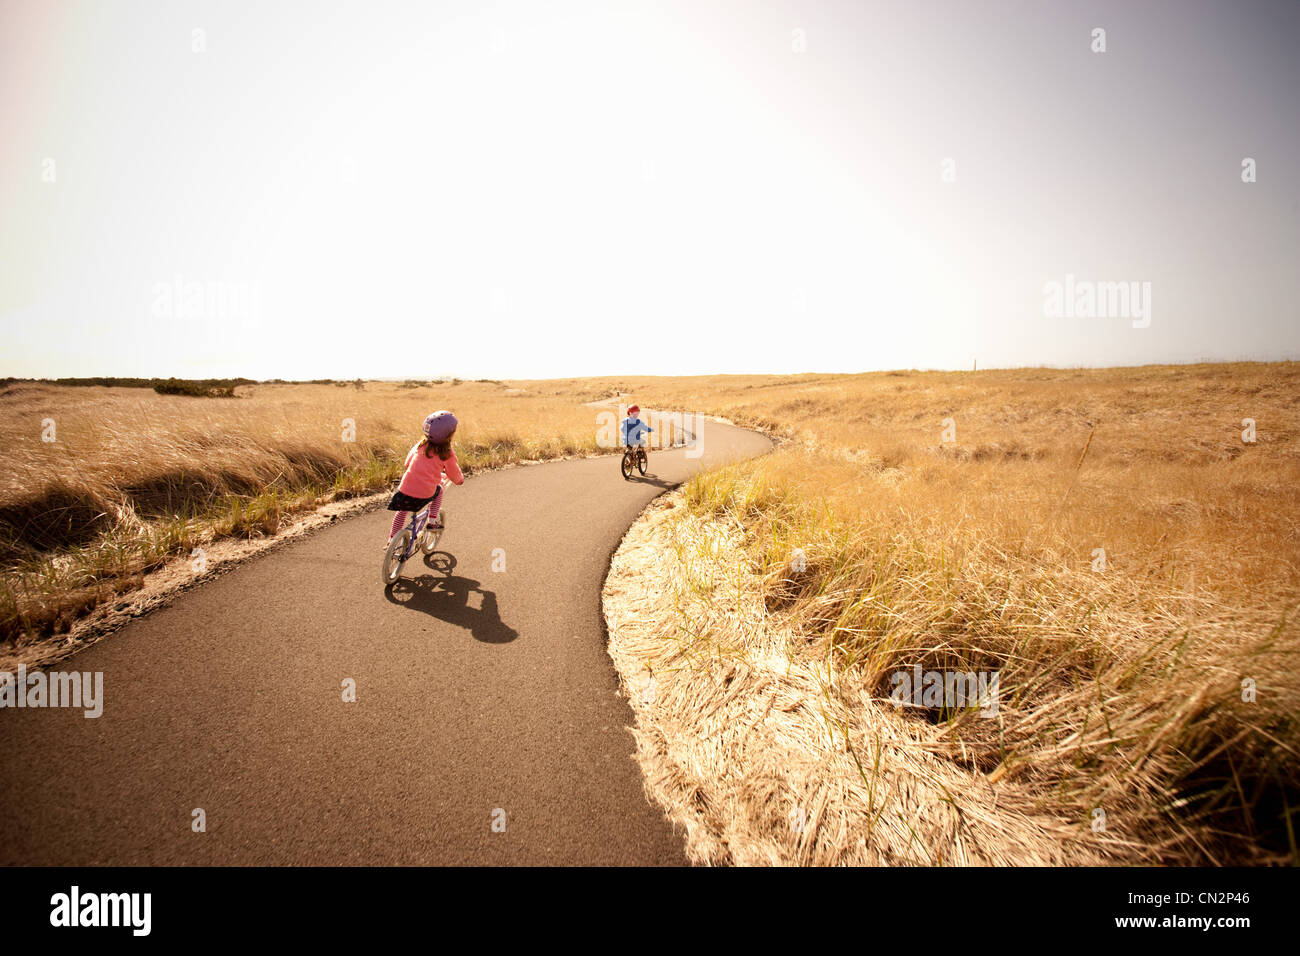 Two children cycling along lane - Stock Image